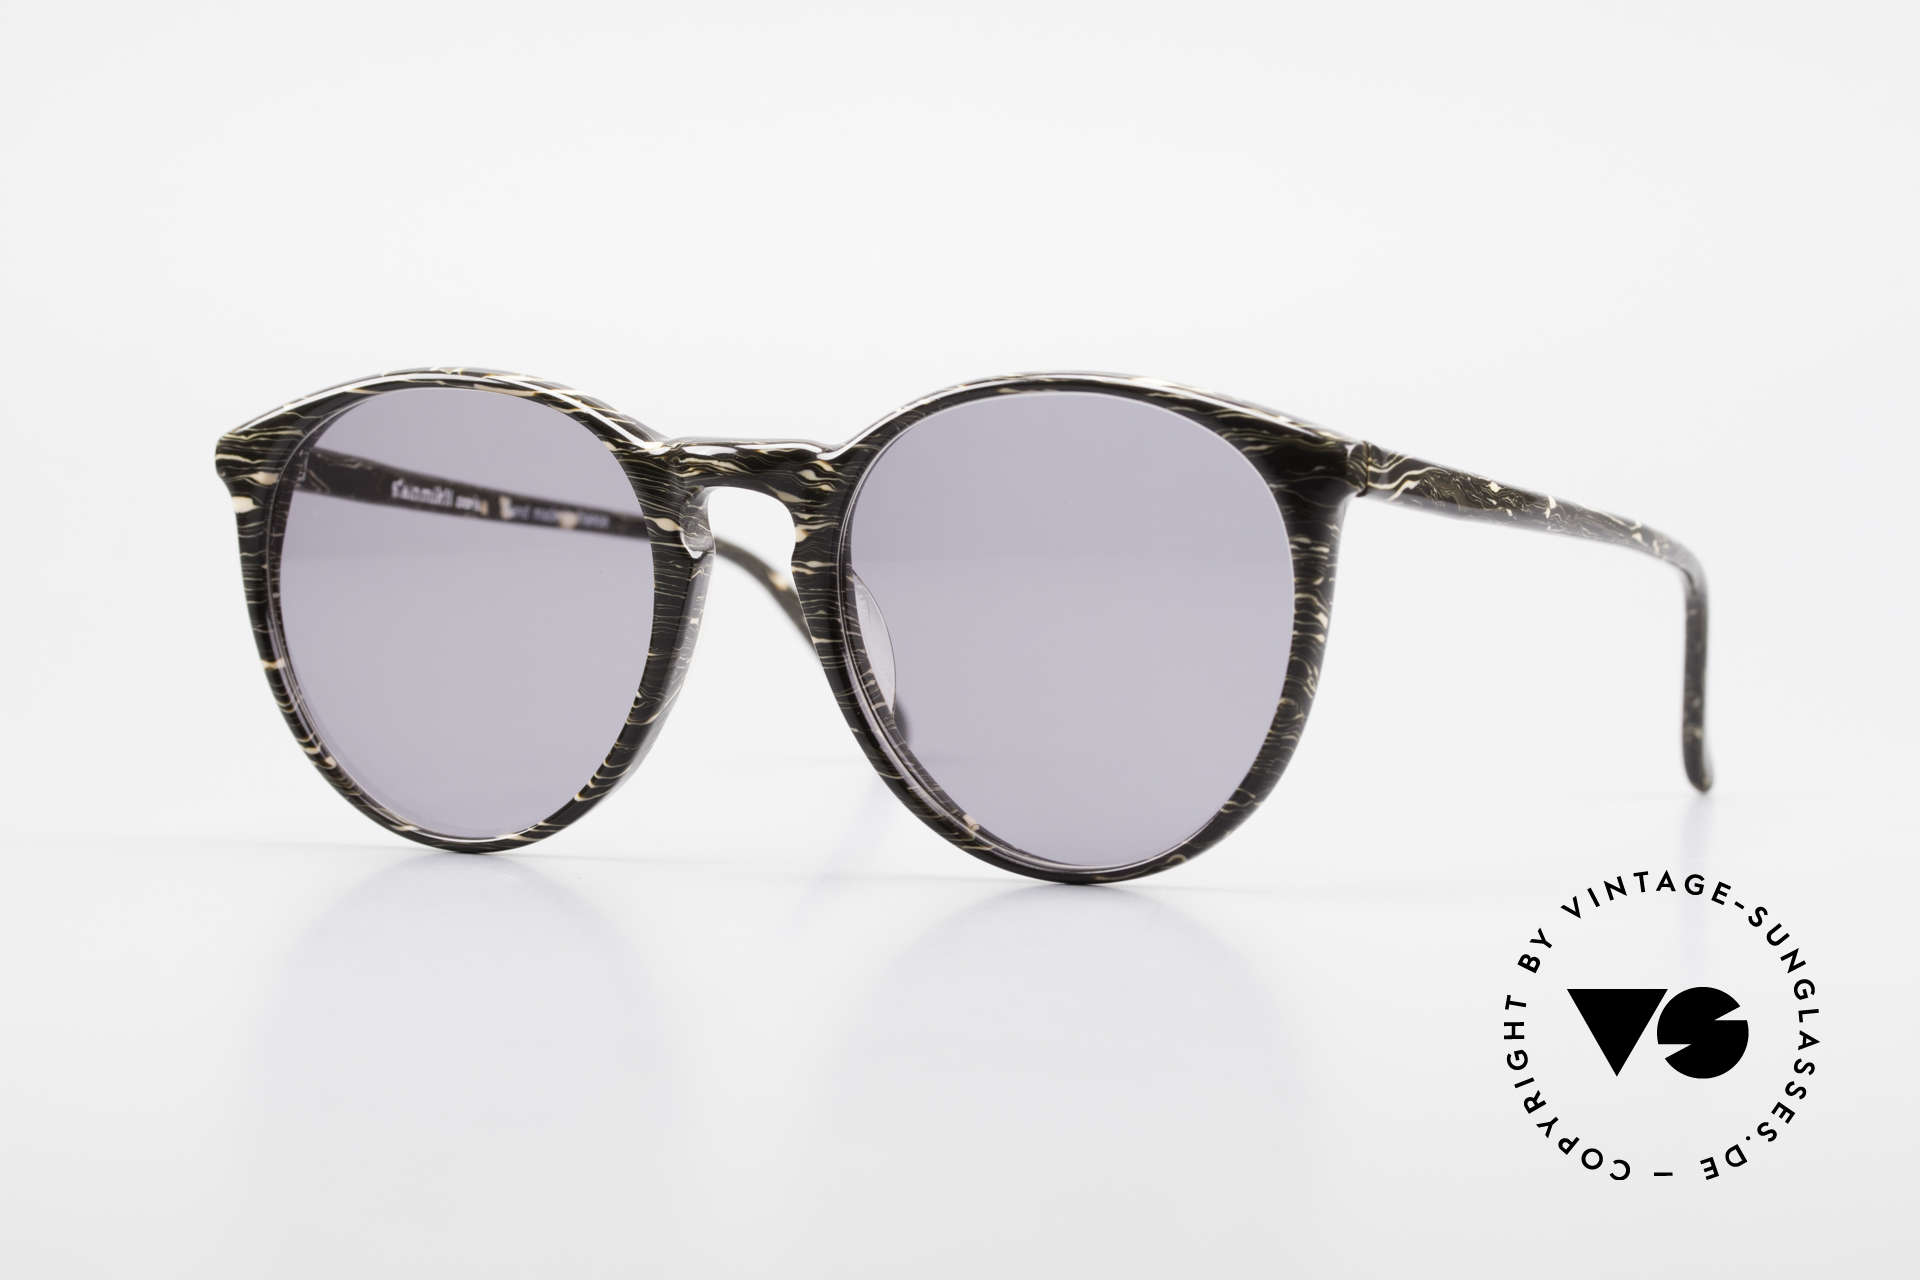 Alain Mikli 901 / 429 Brown Marbled Panto Frame, elegant VINTAGE Alain Mikli designer sunglasses, Made for Men and Women